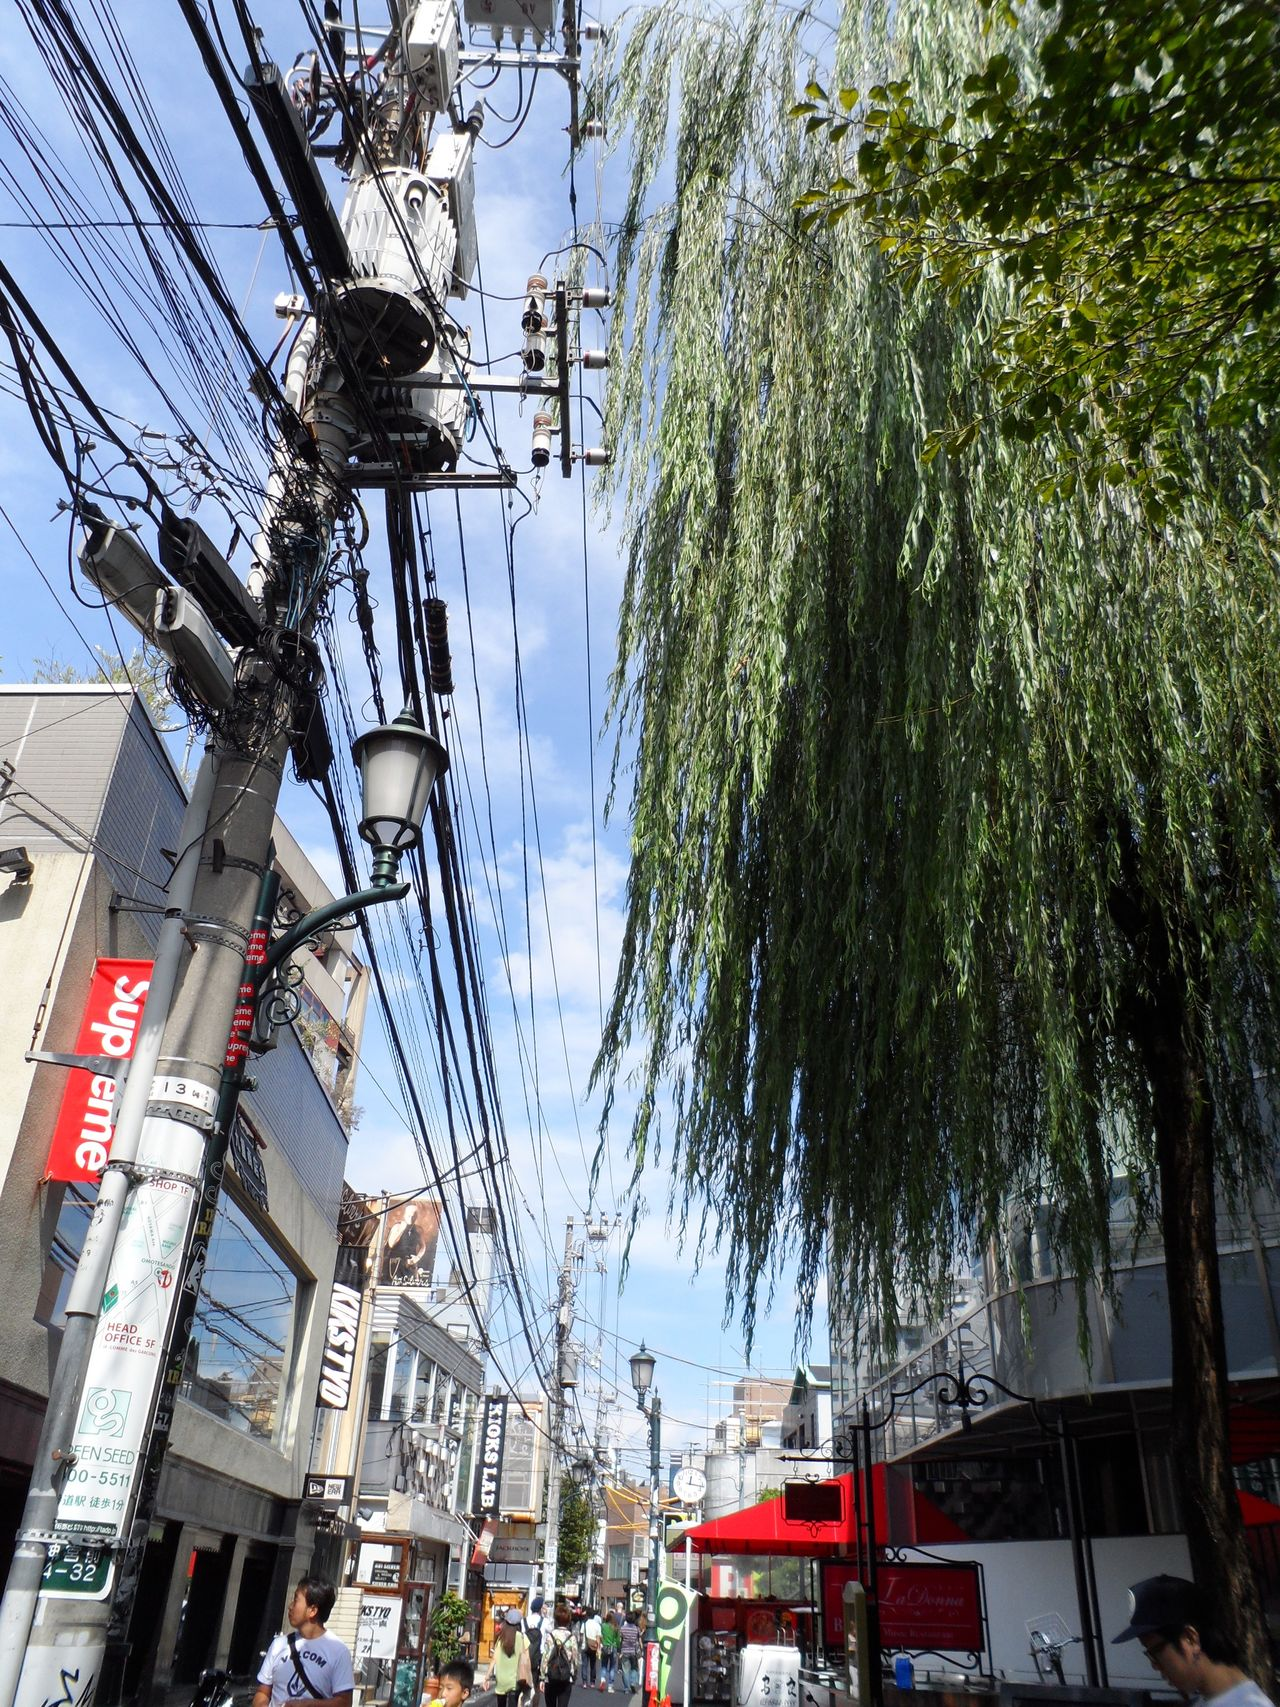 Tree Power Line  City Sky City Life Telephone Line People Cable Sharp Building Exterior 케이블 건물 나무 사진 Photo 풍경 도시 하라주쿠 여행 Trip View Keen 날카롭다 Harajuku Tokyo, Japan